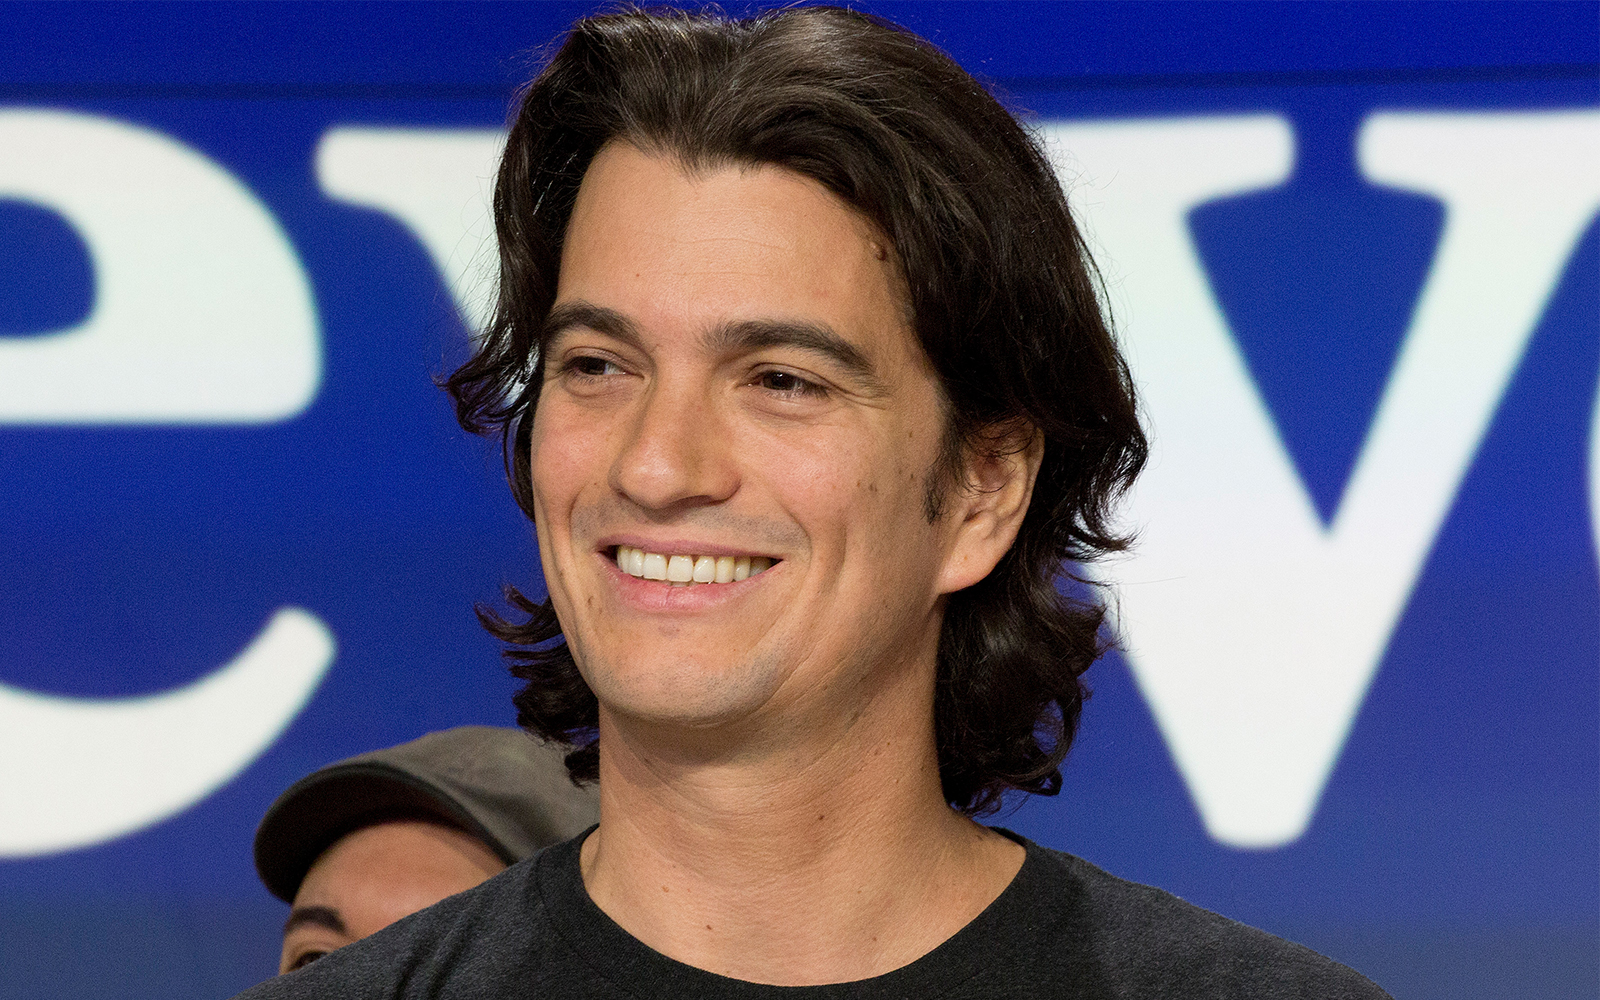 WeWork's Adam Neumann to step down as CEO